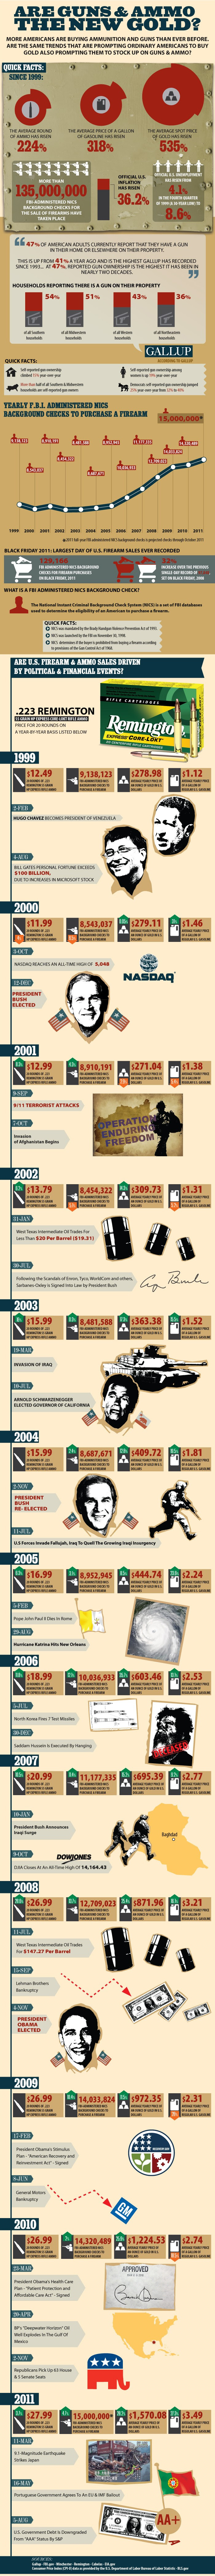 Is Ammo The New Gold? Full Infographic